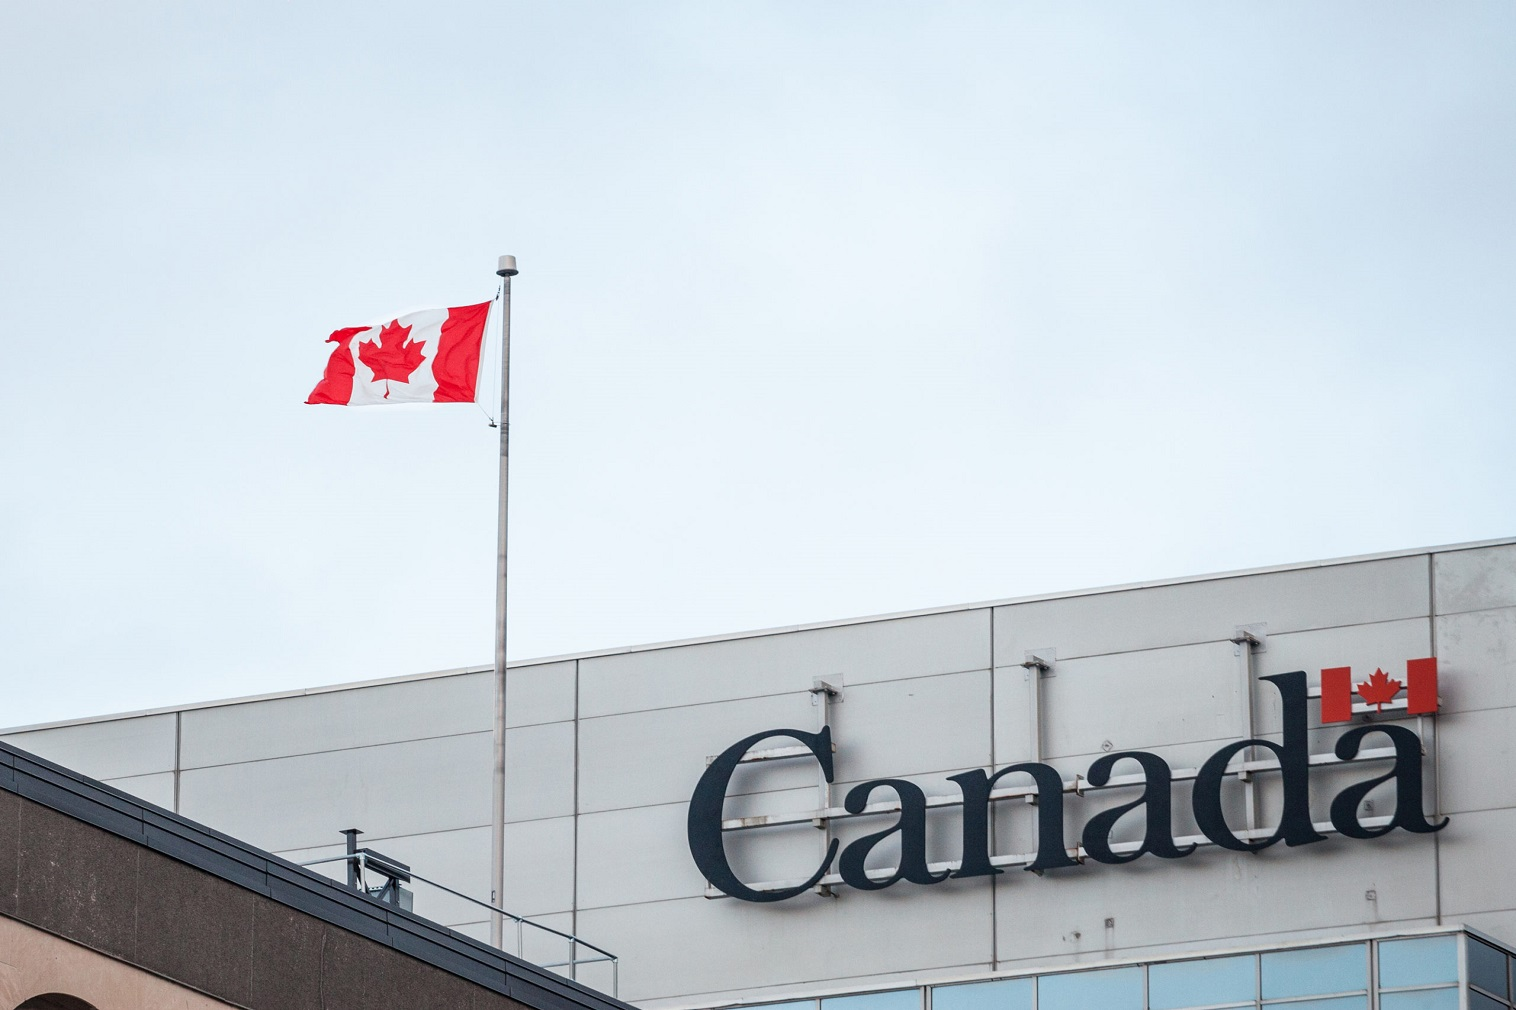 All travellers arriving into Canada must quarantine for 14 days immediately upon arrival.